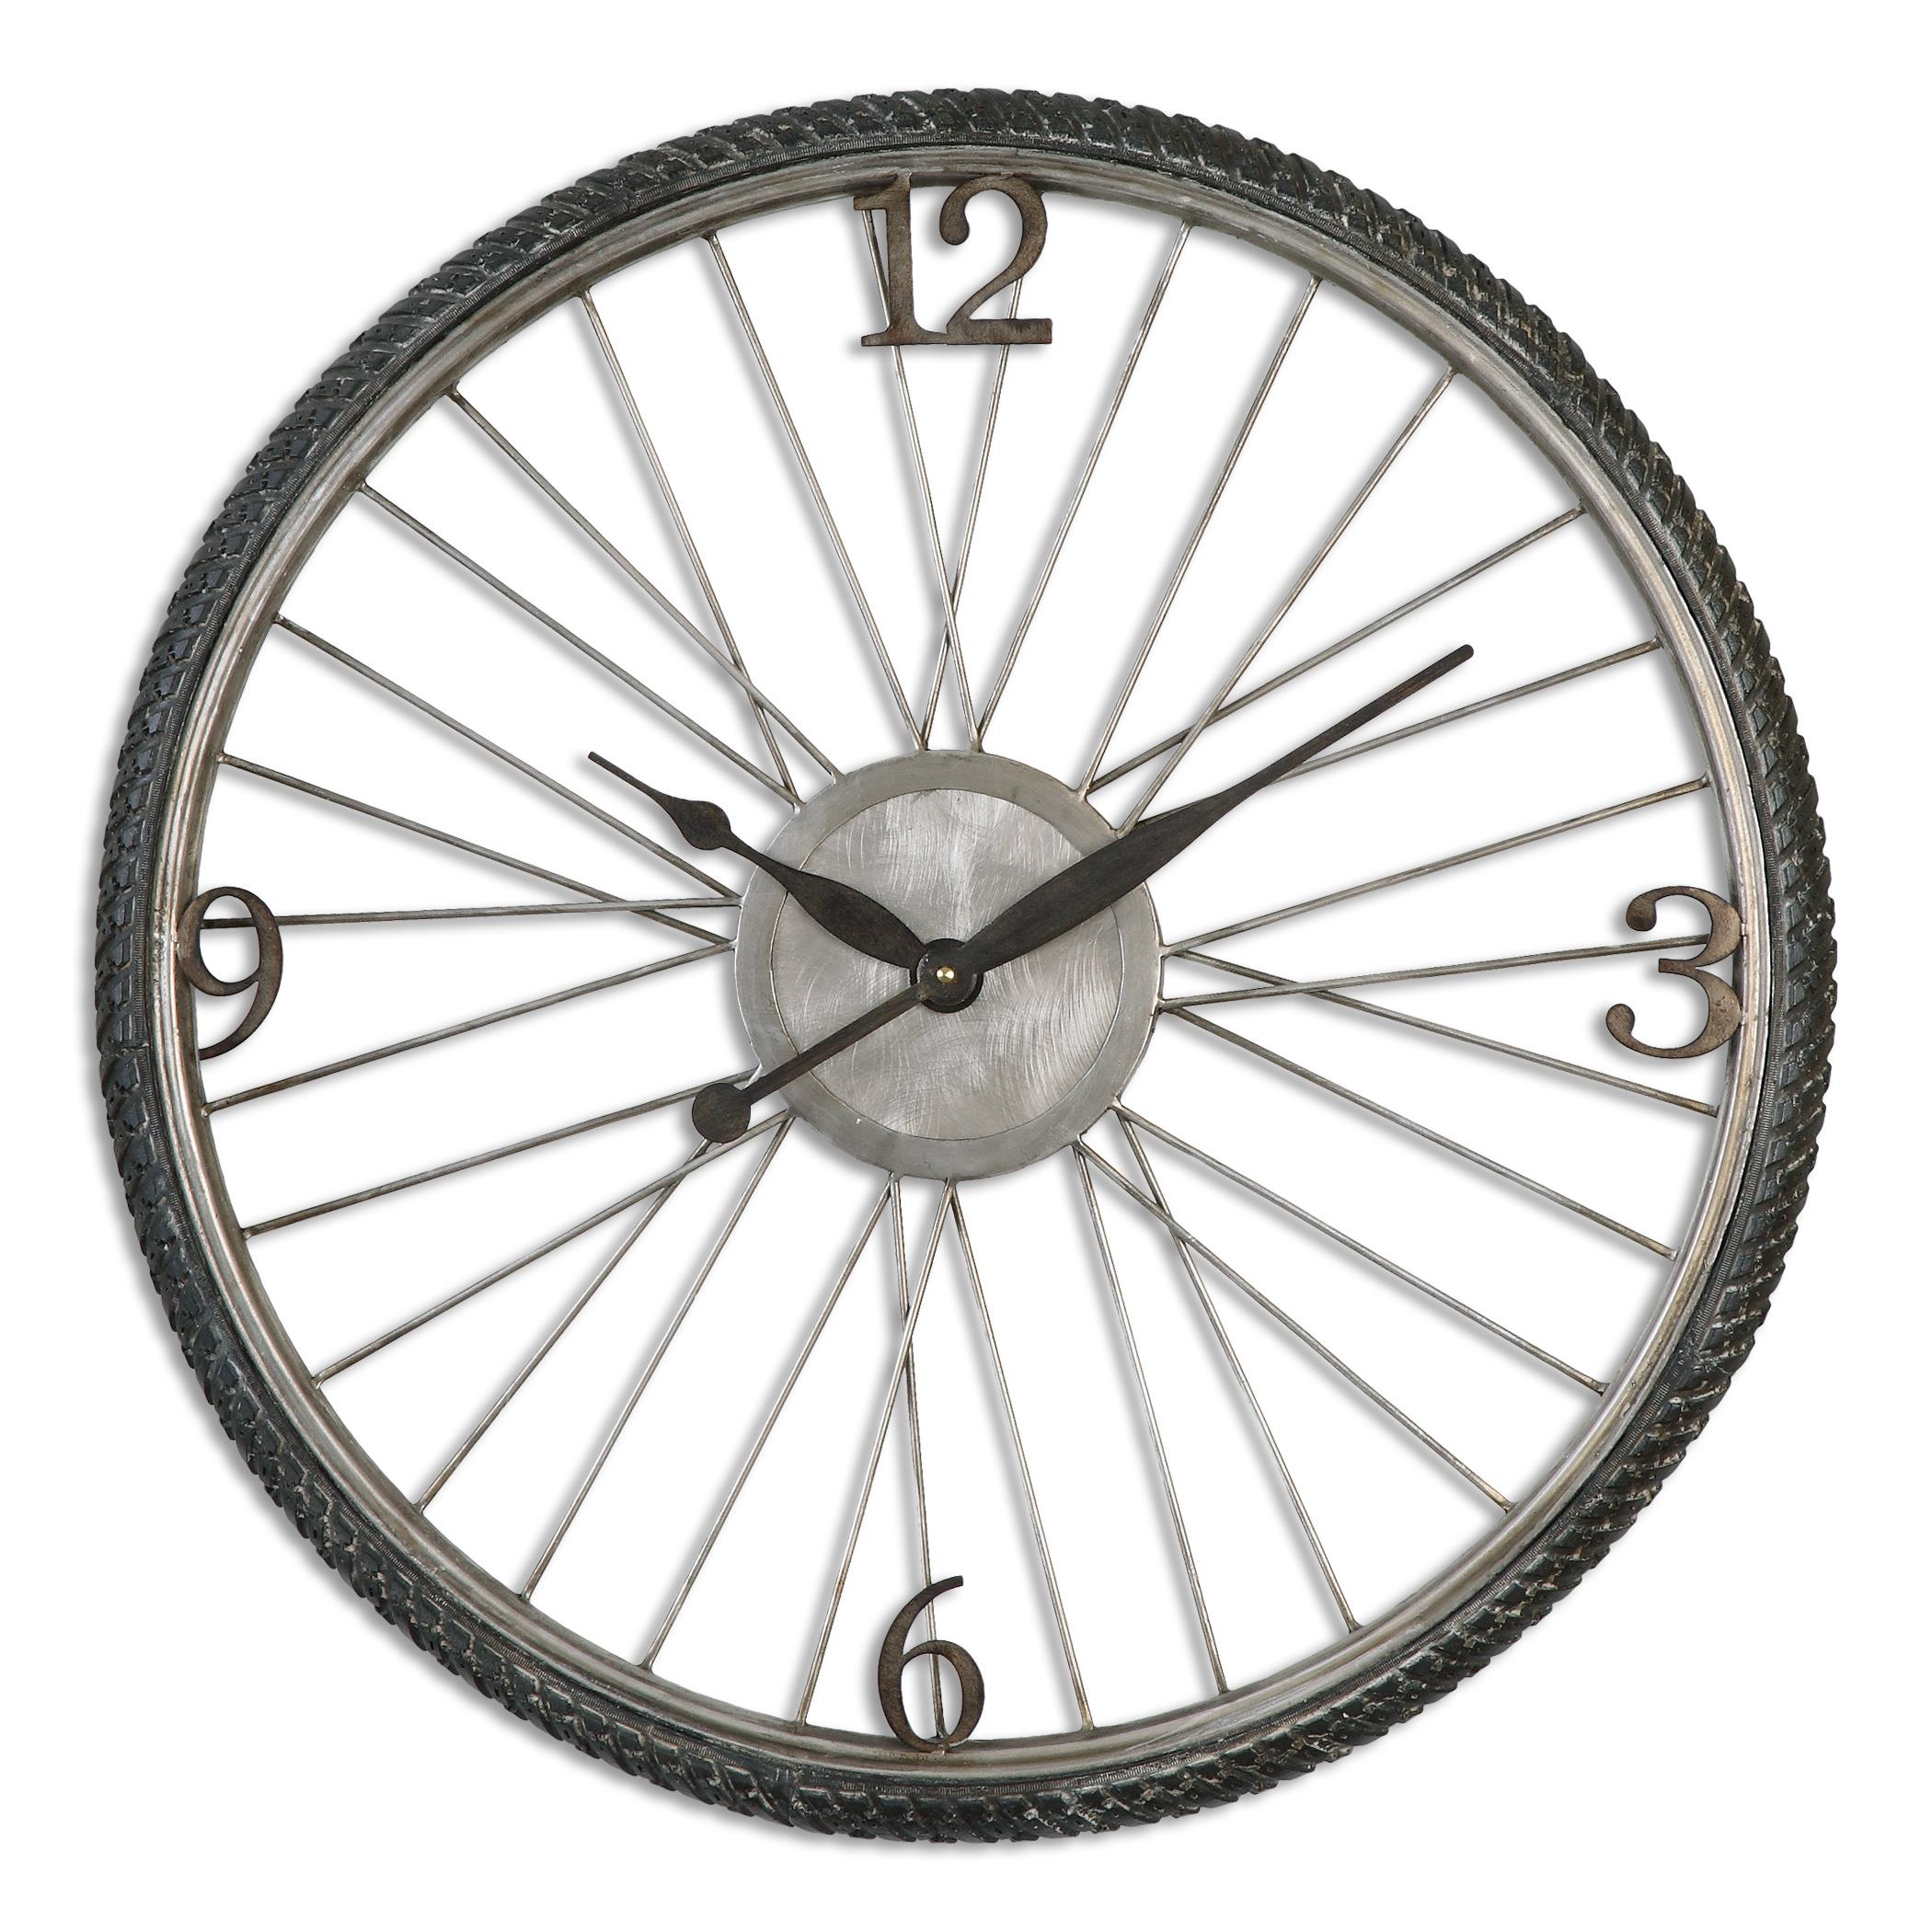 Uttermost Clocks Spokes Aged Wall Clock - Item Number: 06426